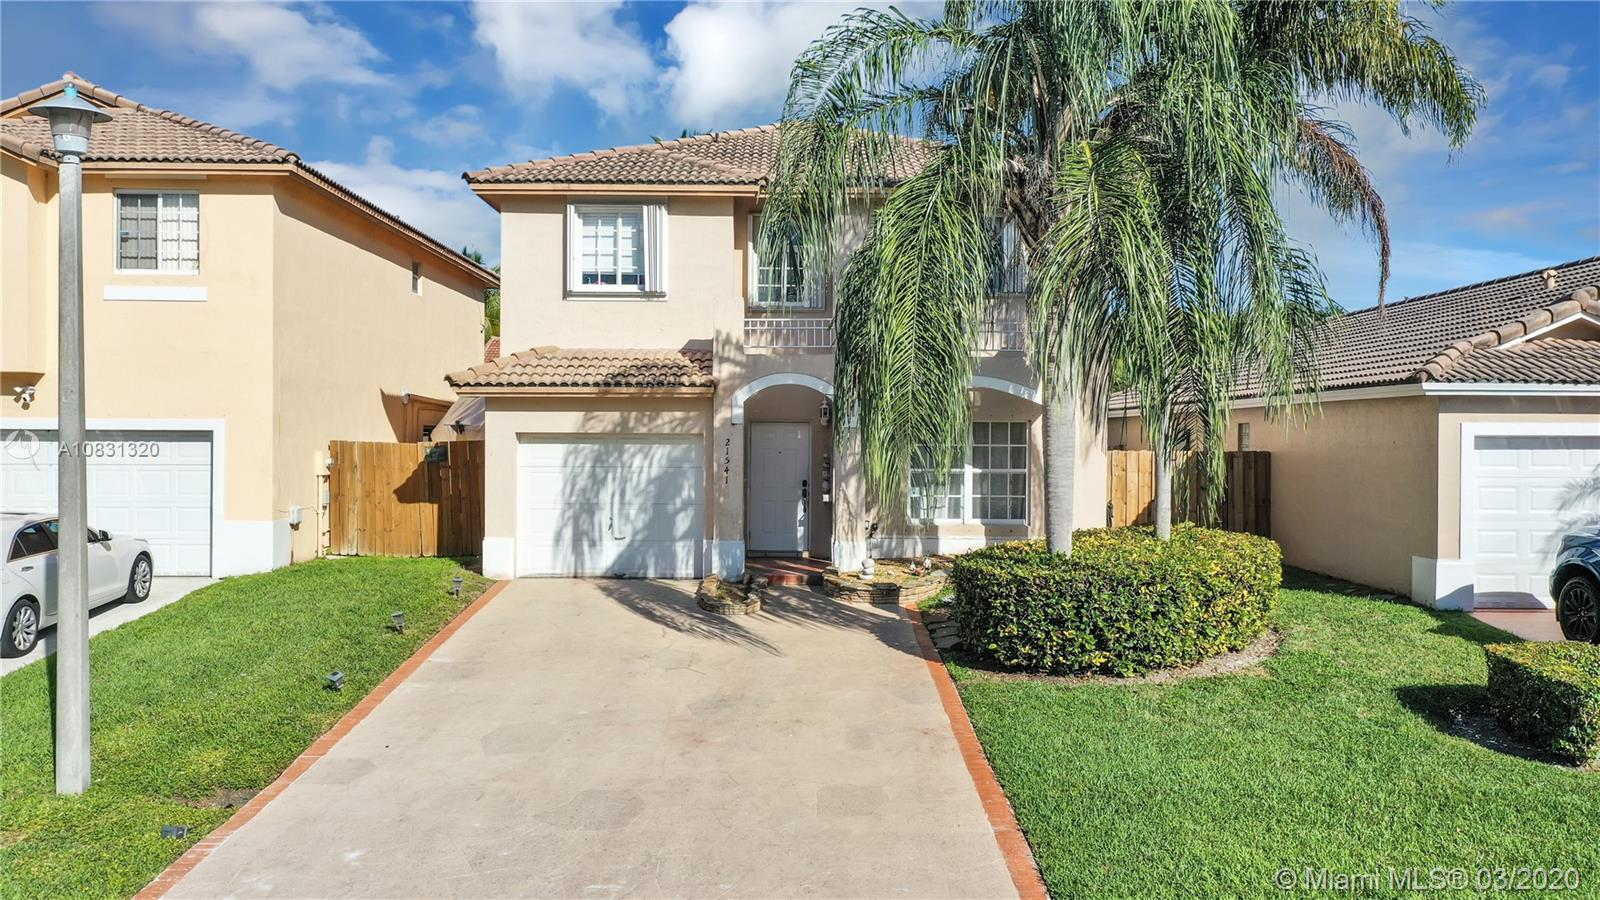 21541 SW 88th Ave  For Sale A10831320, FL